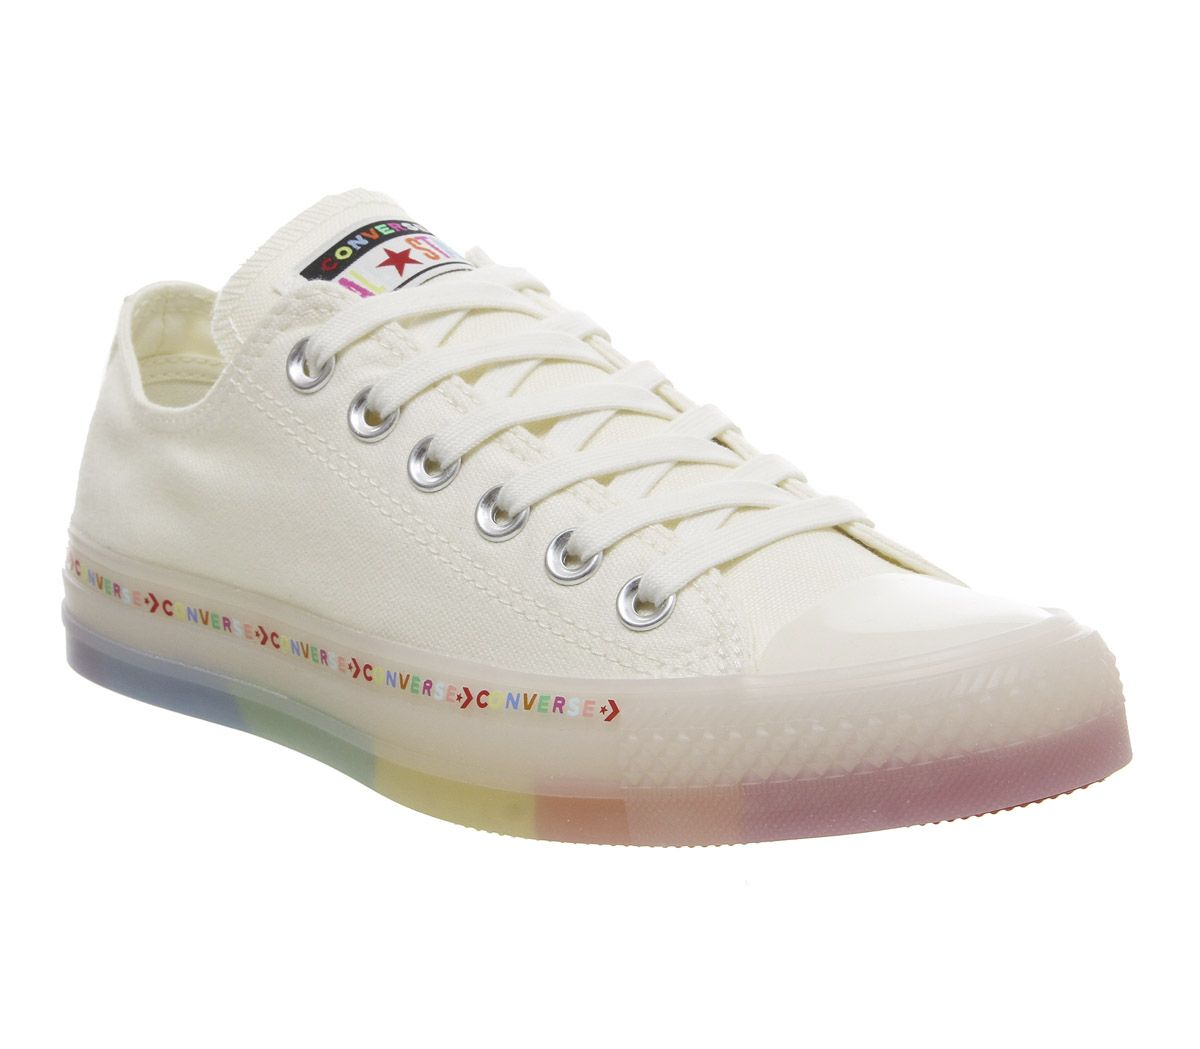 952d9ed5fed0 Converse Converse All Star Low Trainers Egret White Rainbow ...